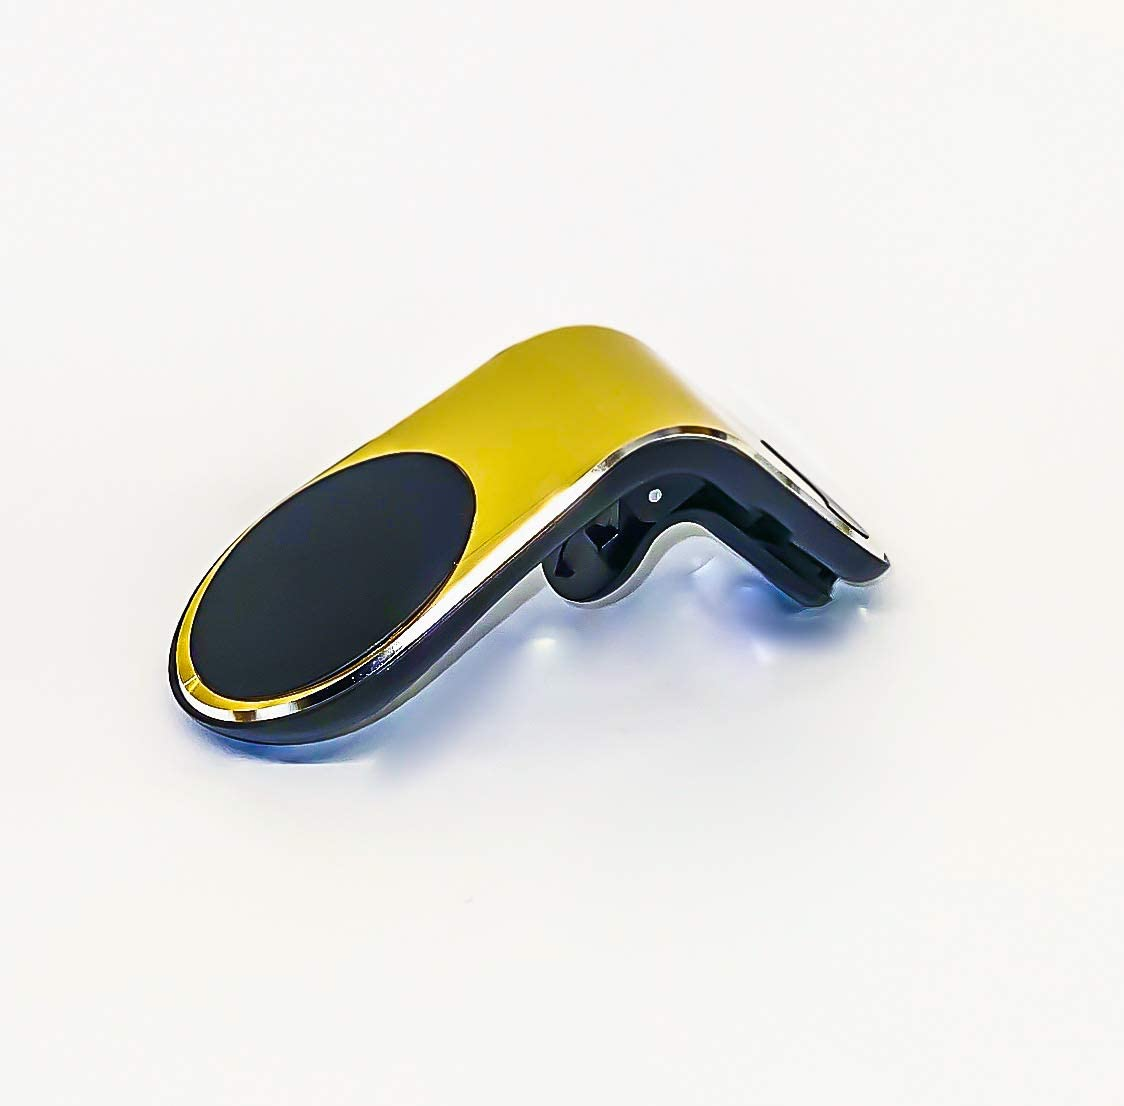 i.e. iPhone, Samsung Gold Compatible with Smartphones HOS Car-Air Vent Mount Magnetic Phone Holder Universal Dashboard Mount Black /& Silver /& Gold Colors Available